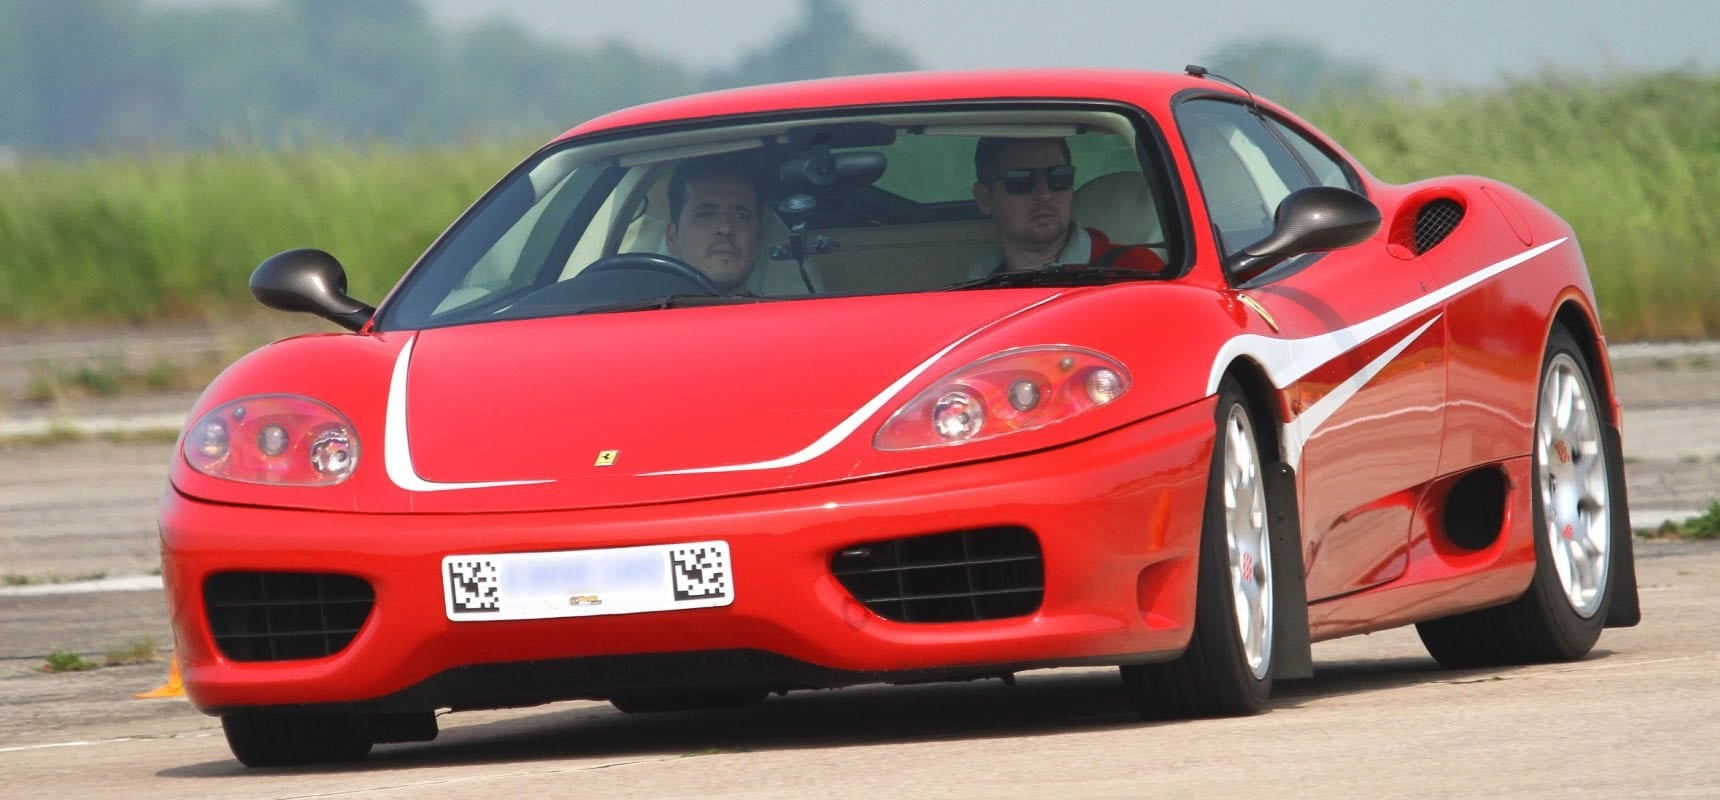 Ferrari Driving Demo - Oxfordshire-1